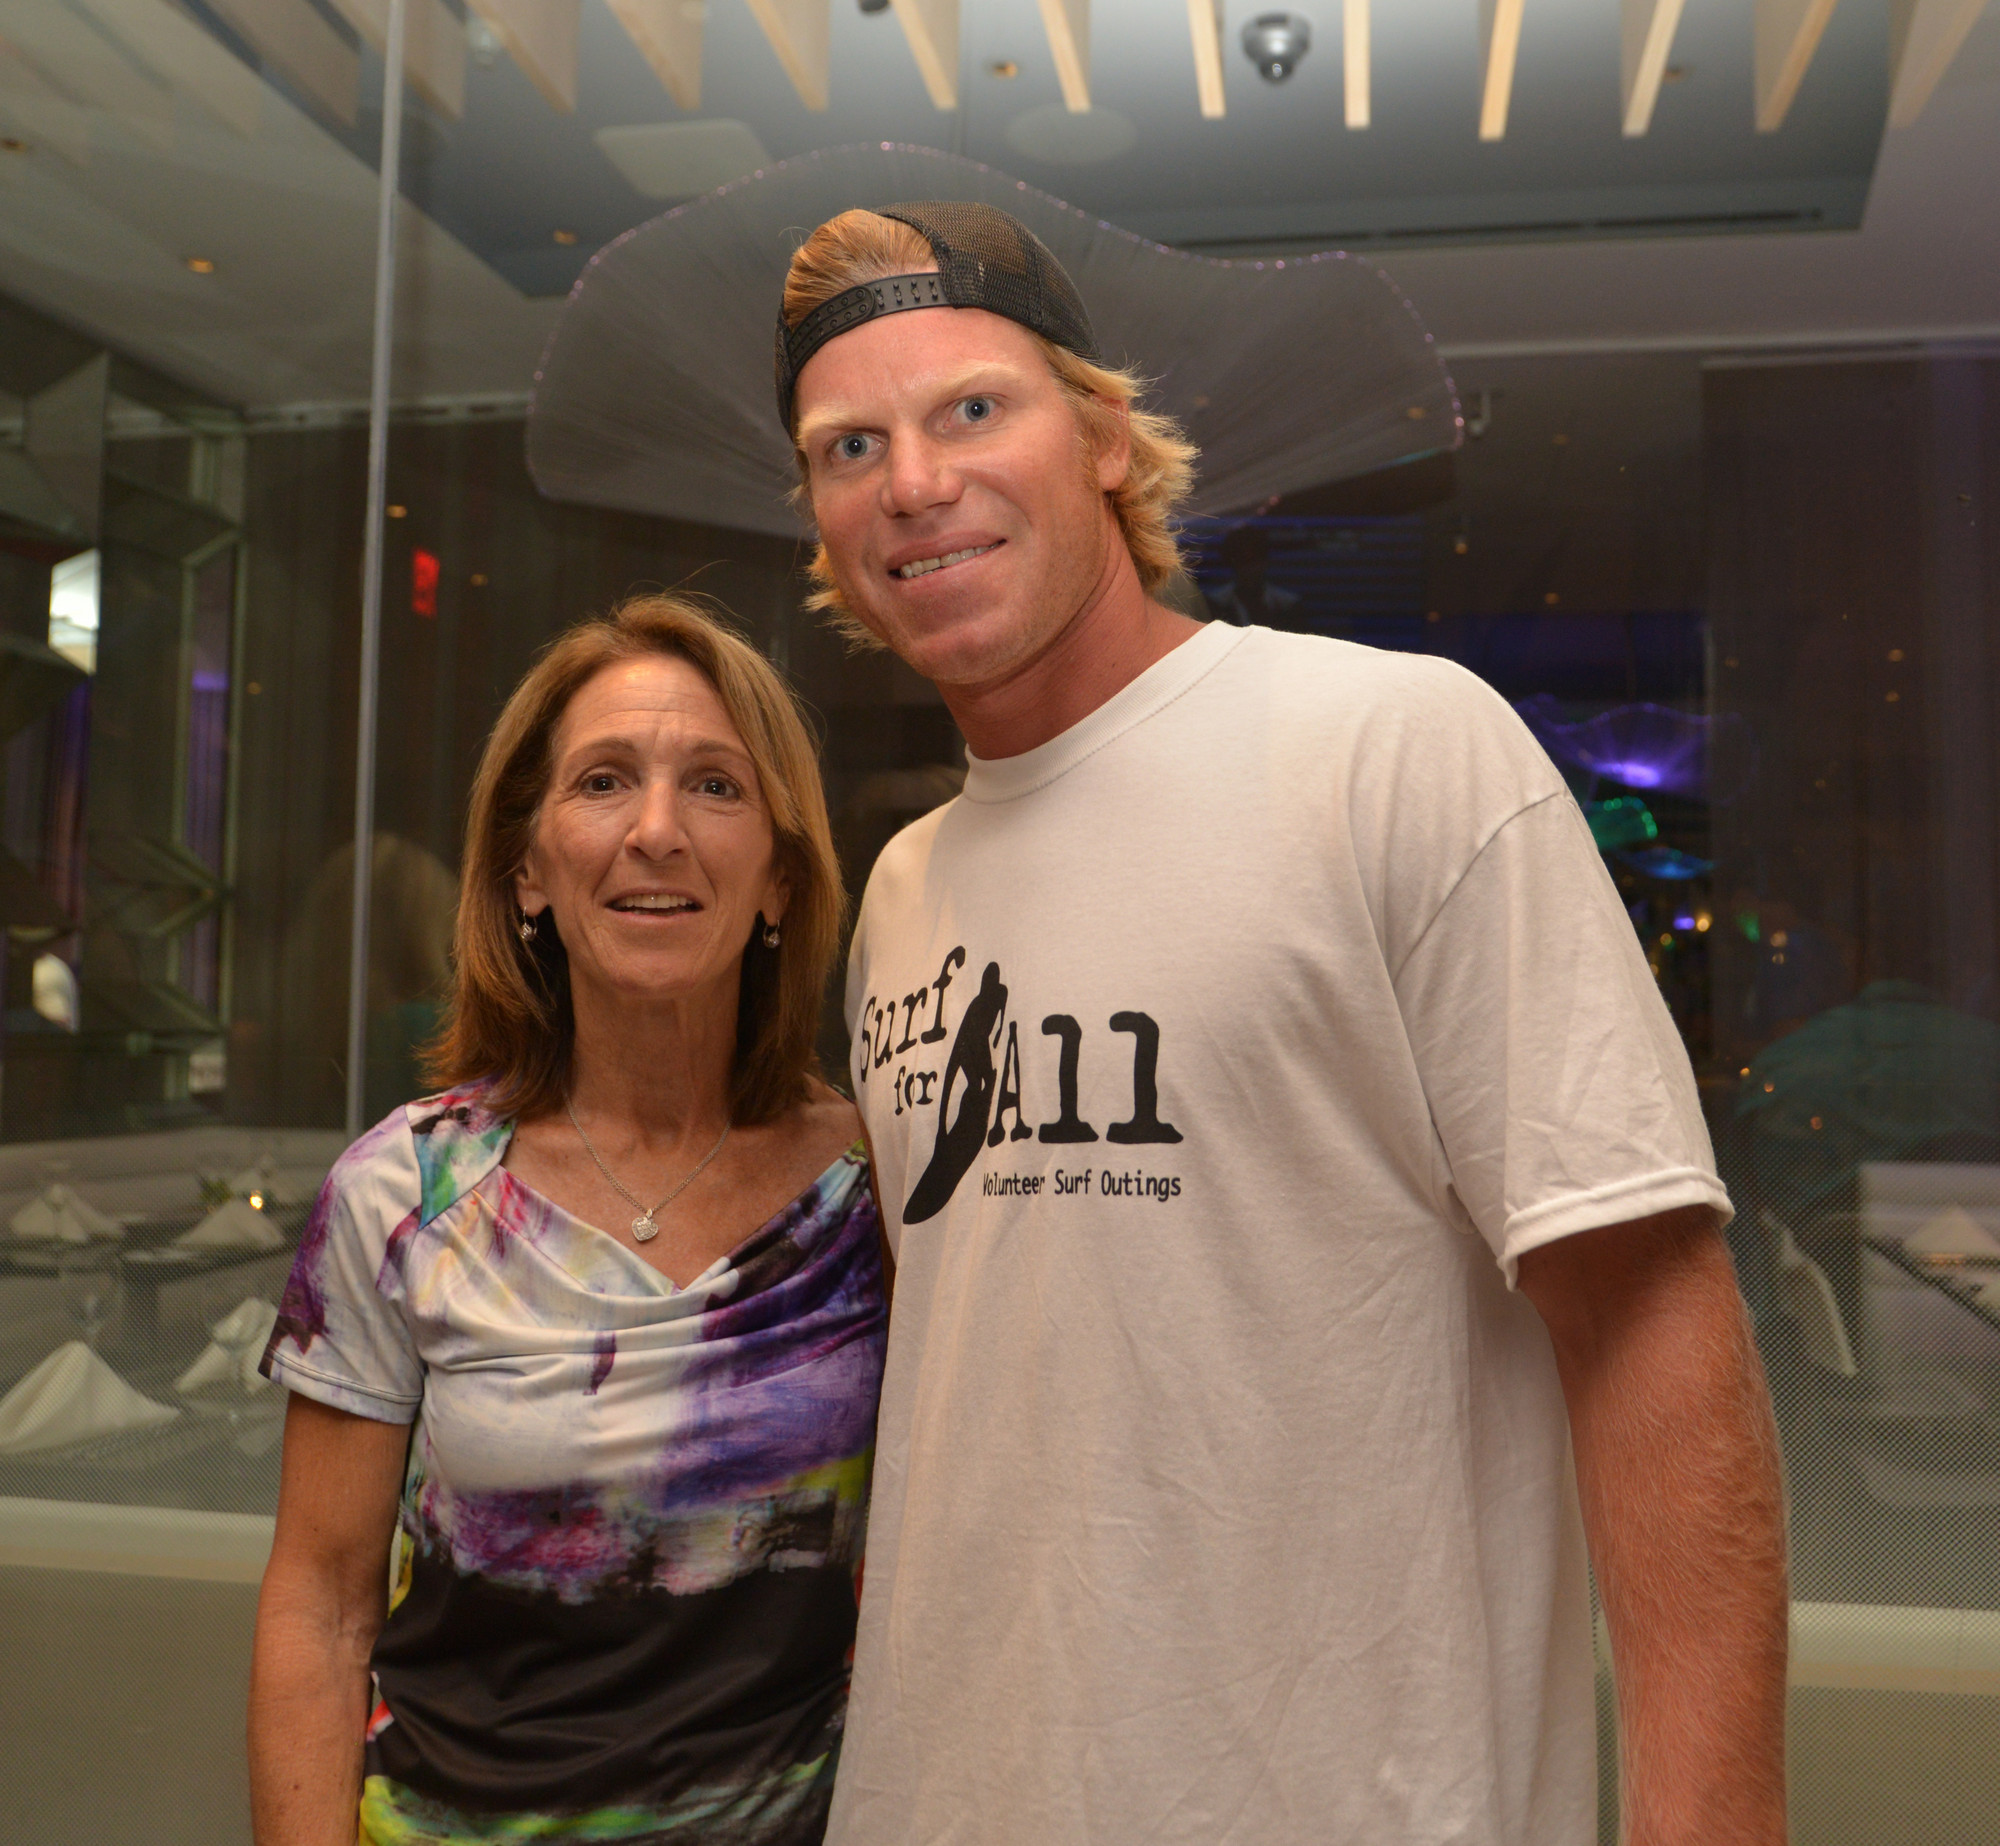 Councilwoman Fran Adelson with Cliff Skudin at the Surf Week art show at the Allegria Hotel.